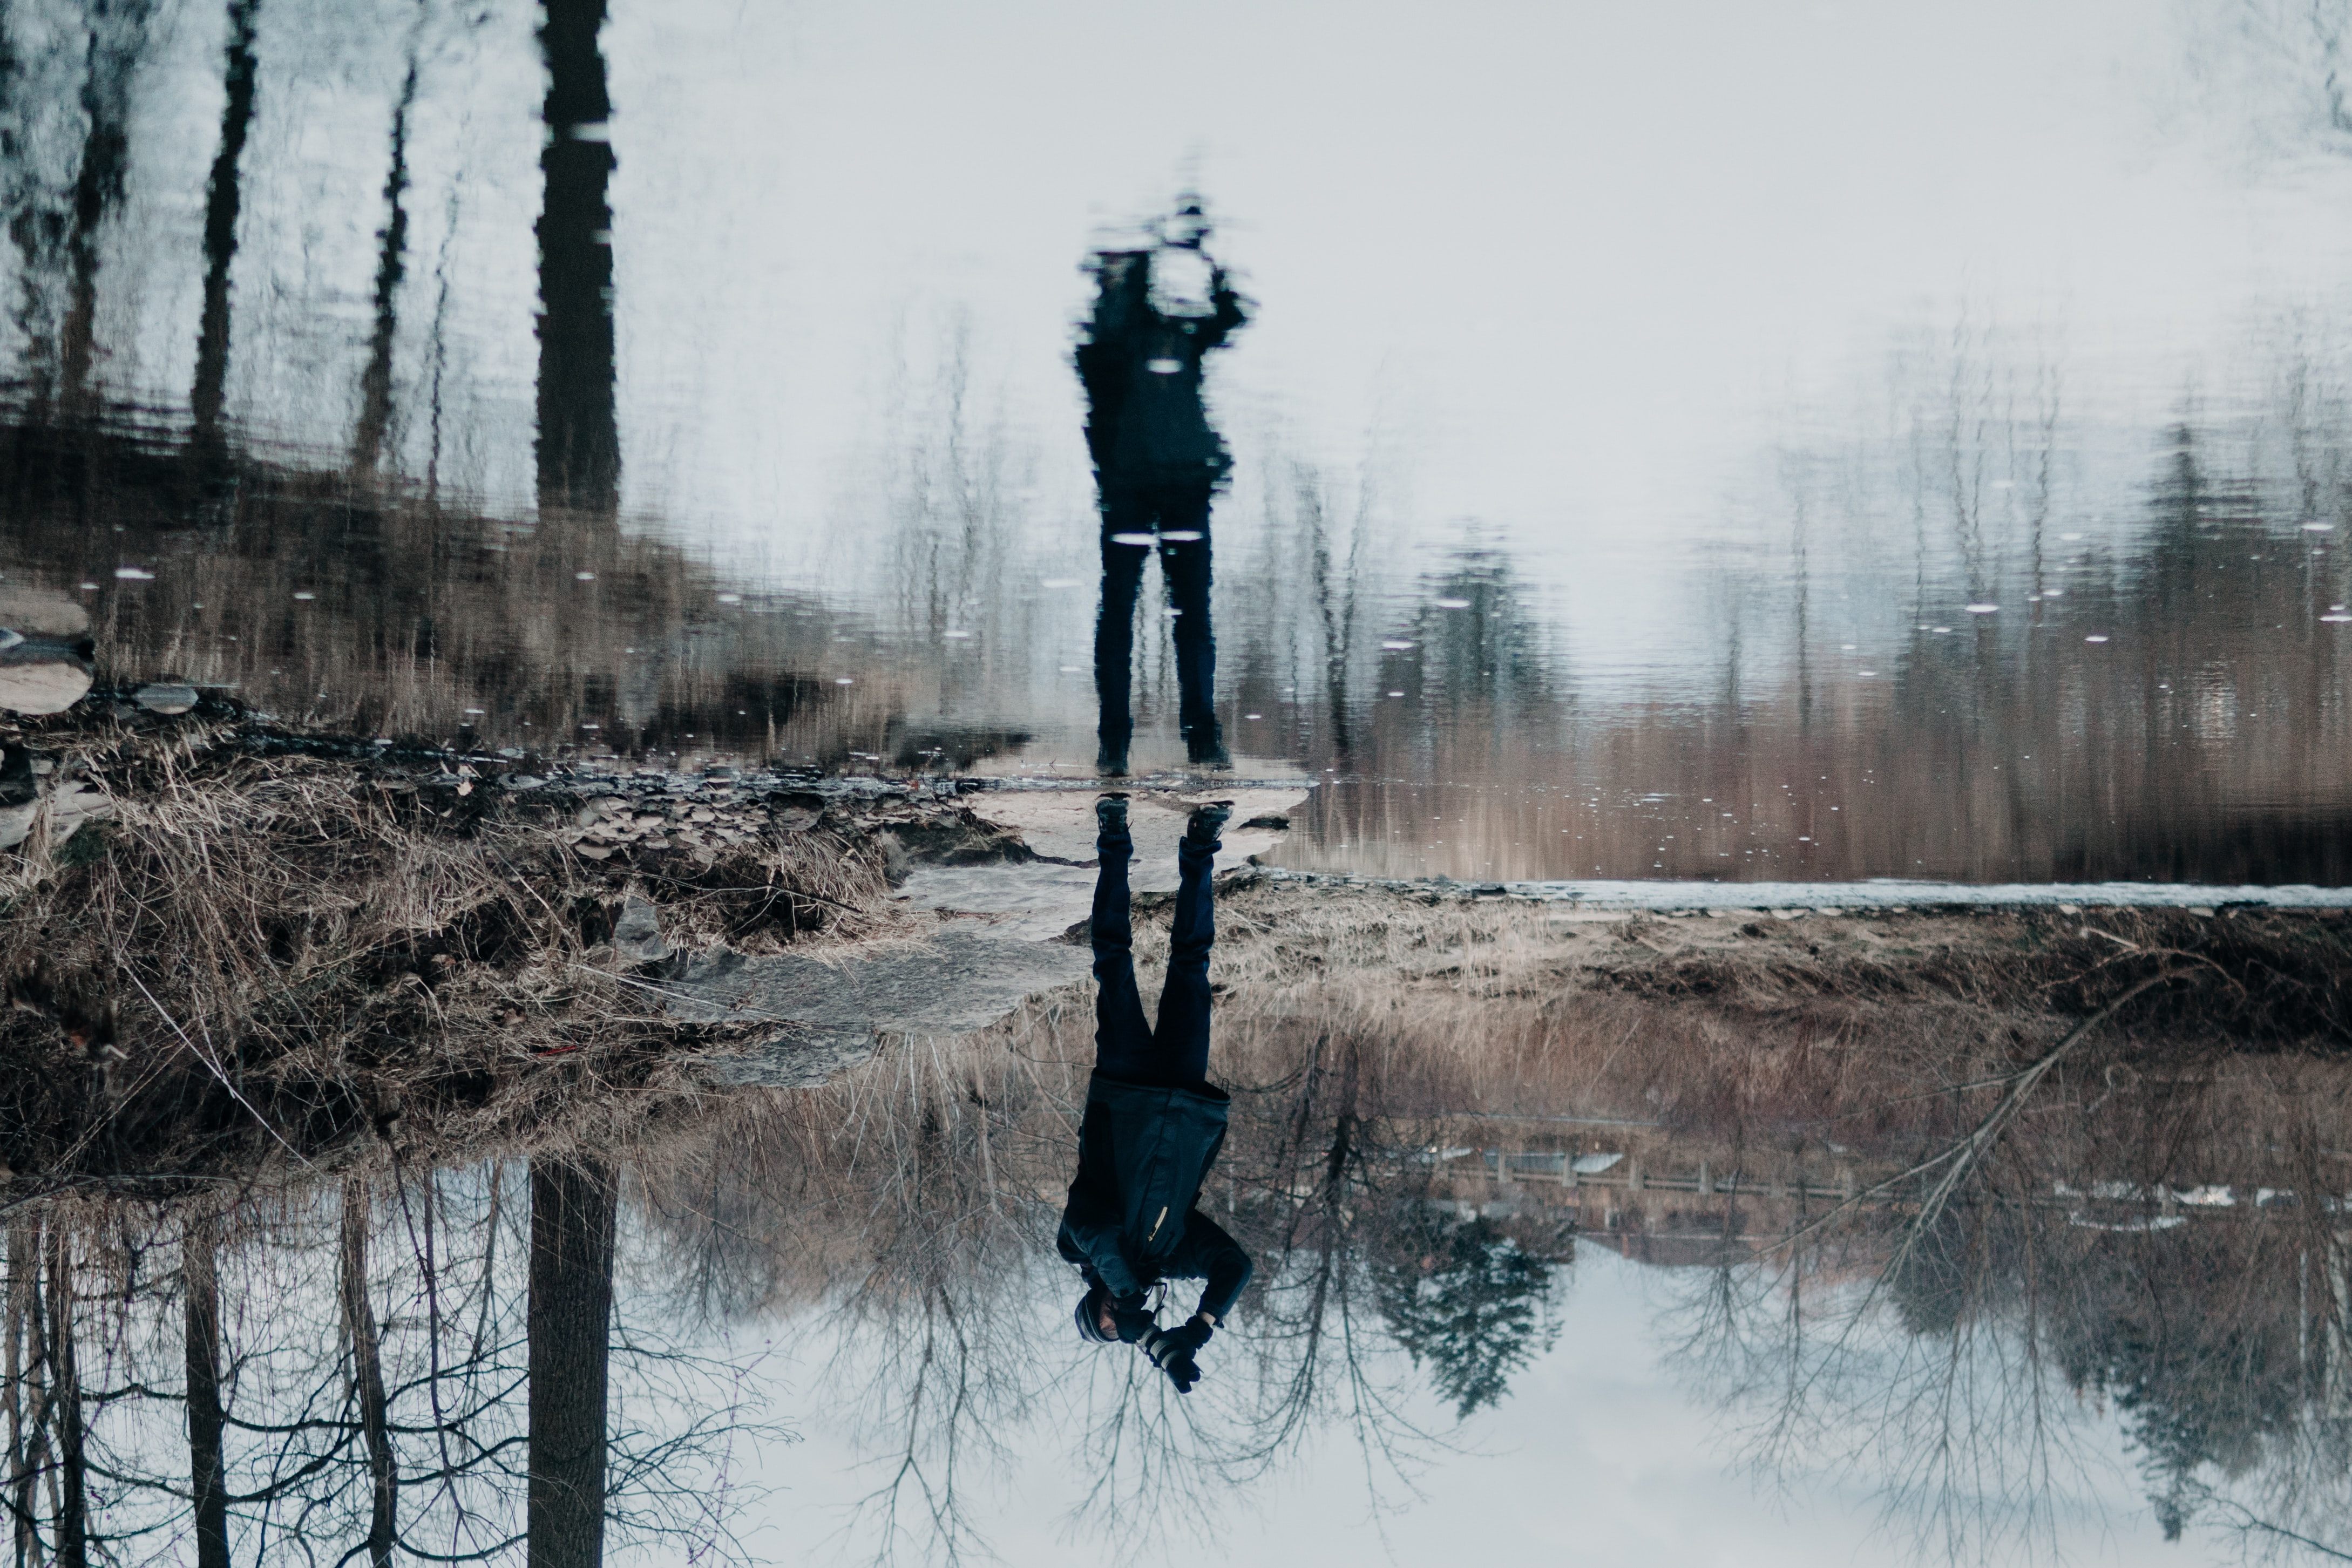 water reflection of a person holding camera standing near pond